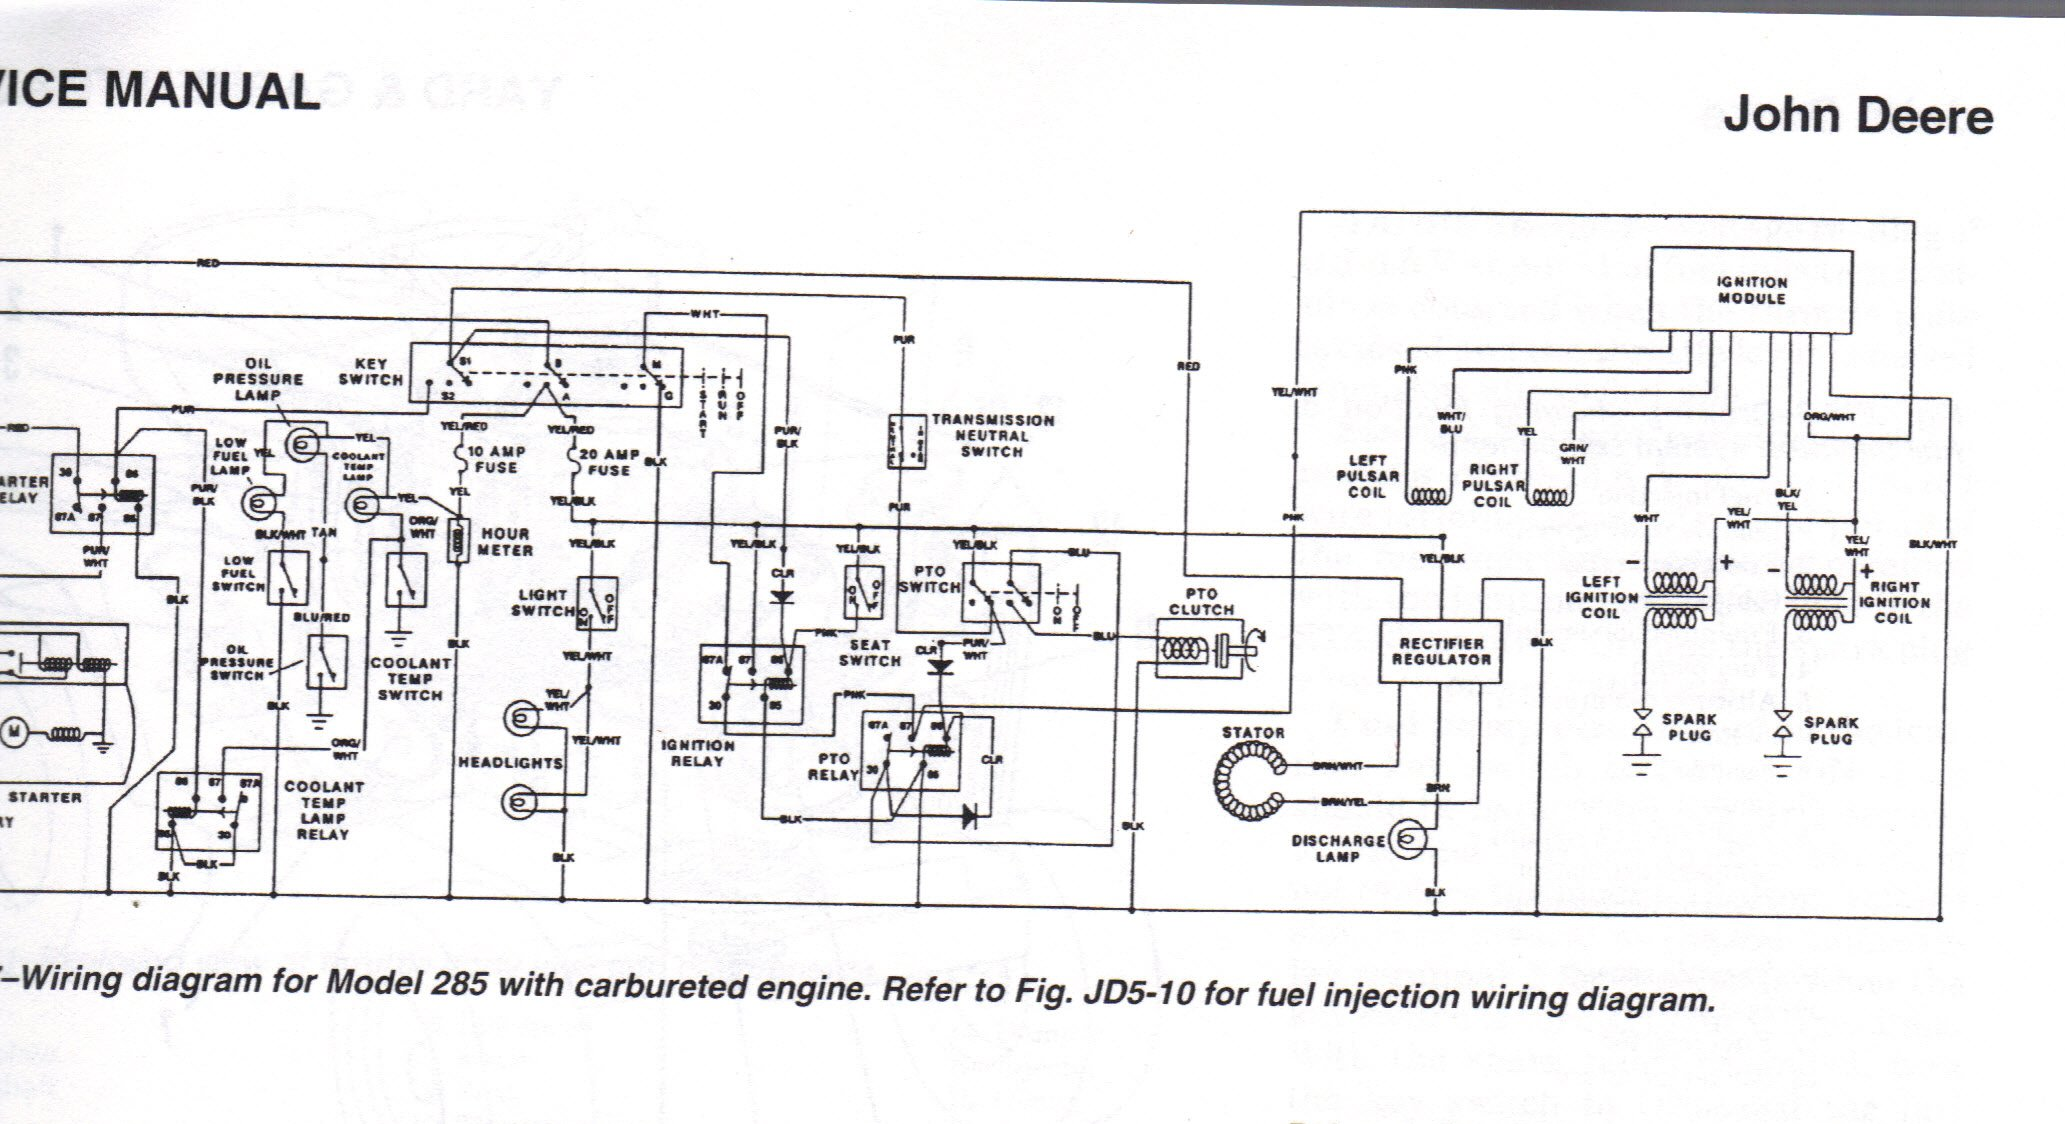 deere 325 17hp deere kawasaki engine manfactured 1995 98 i am rh justanswer com  john deere 2010 wiring diagram